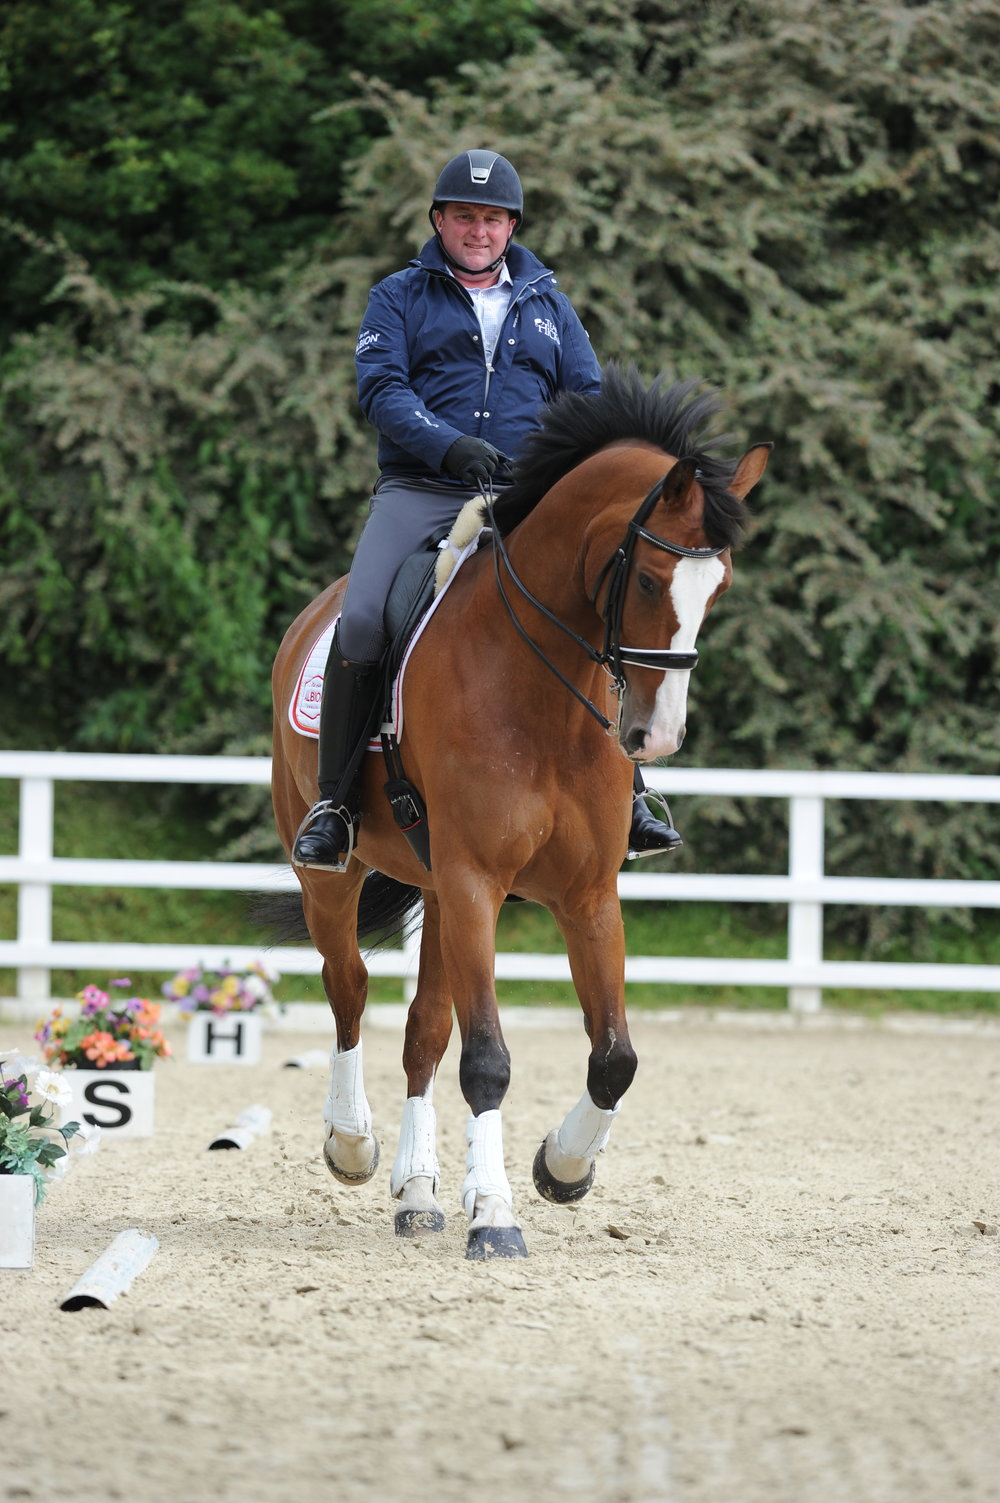 Perfect your lateral work with the help of dressage rider and trainer Matt Hicks